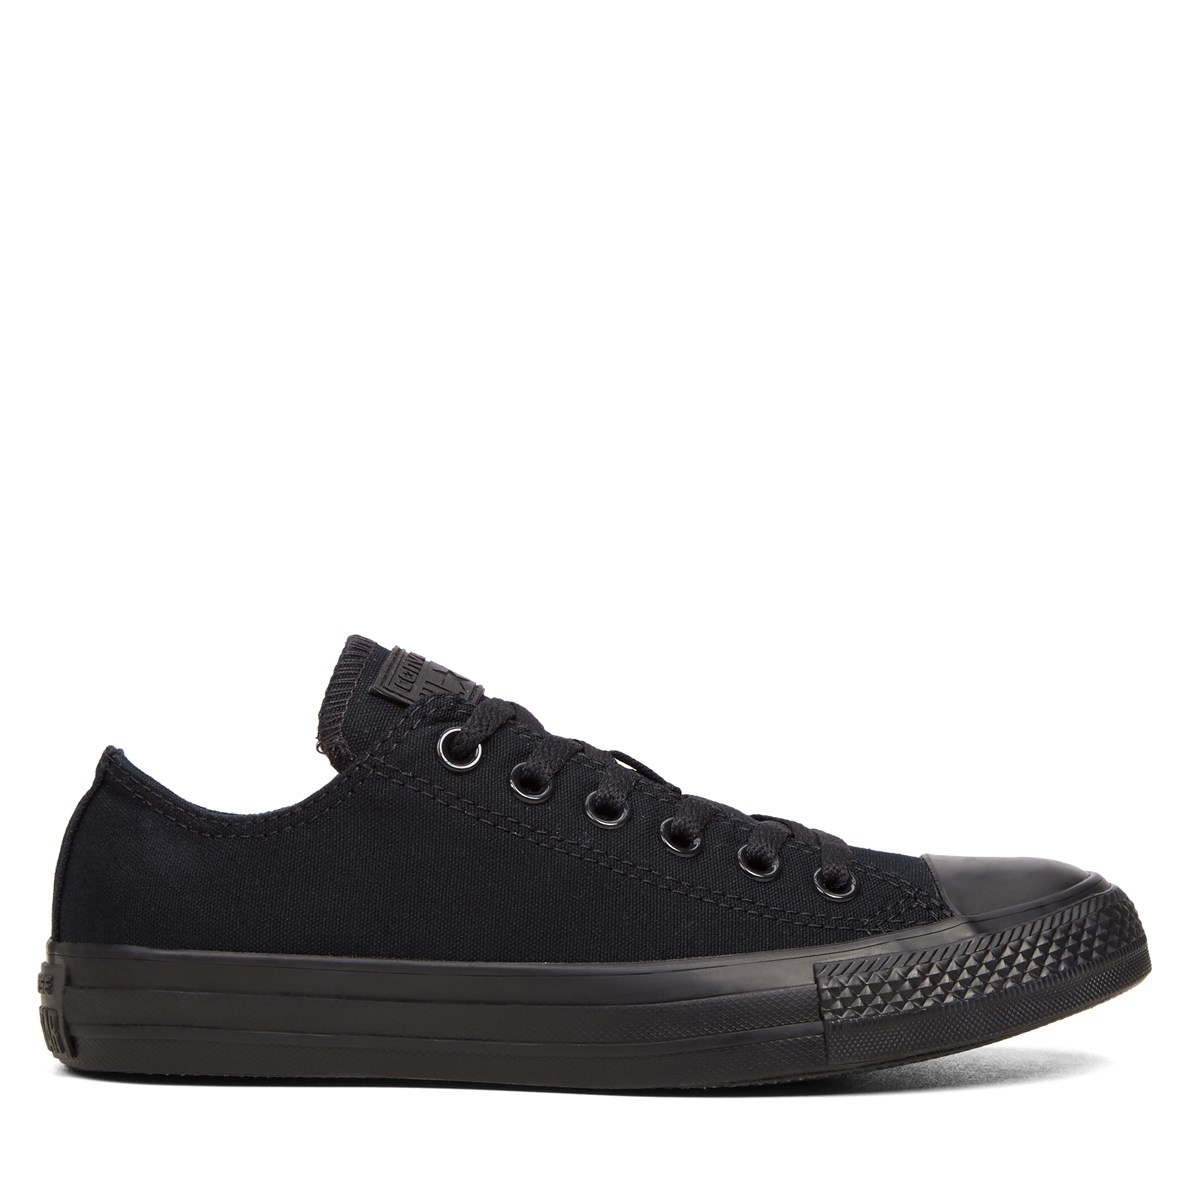 Women's Chuck Taylor All Star Low Top Sneakers in Black